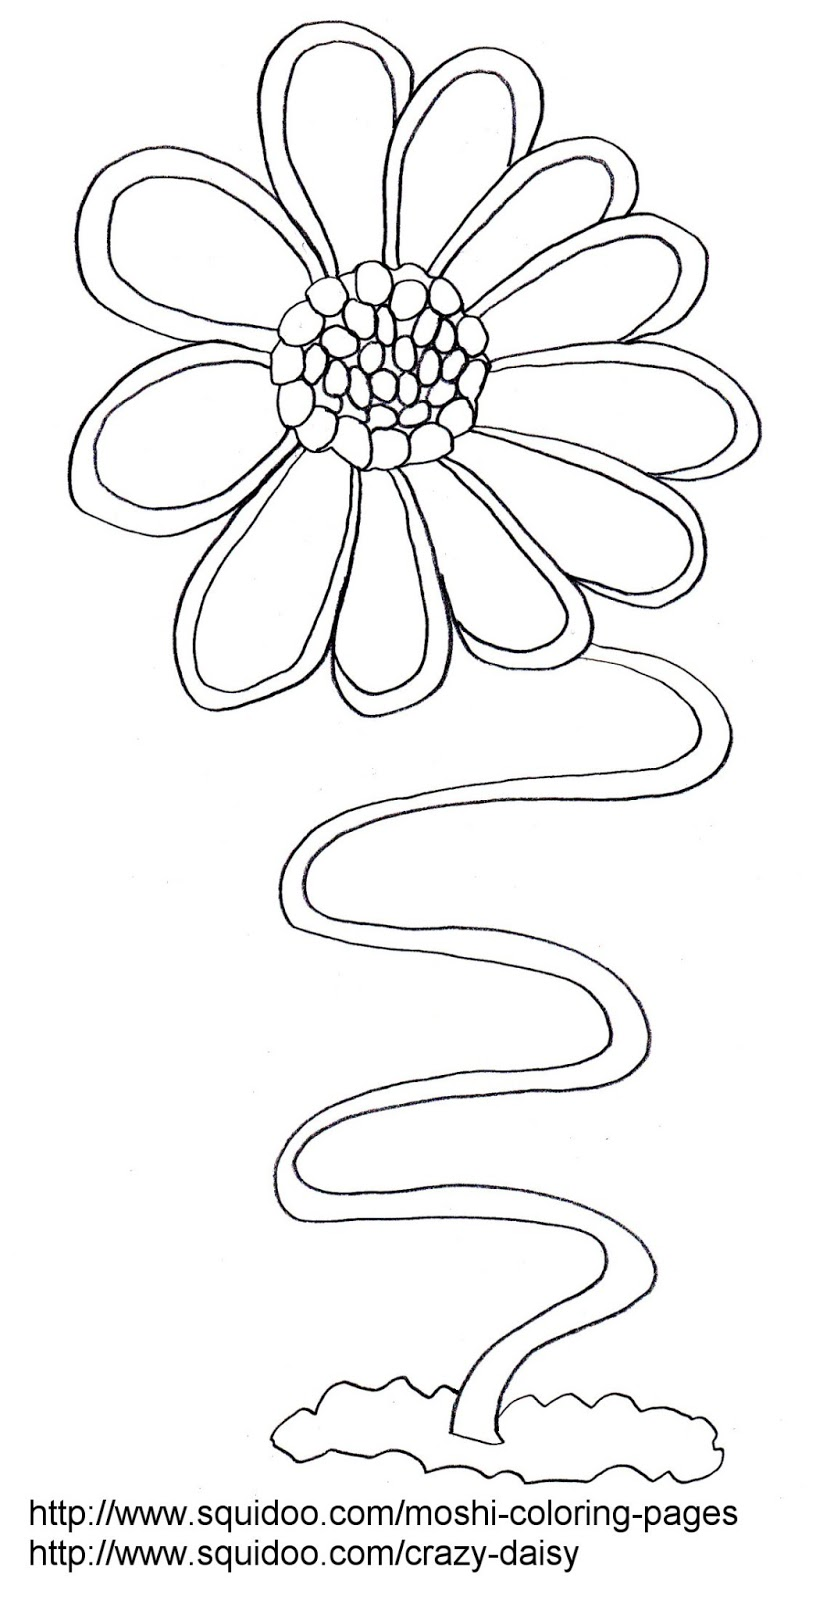 Daisy coloring picture for kid for Daisy coloring page